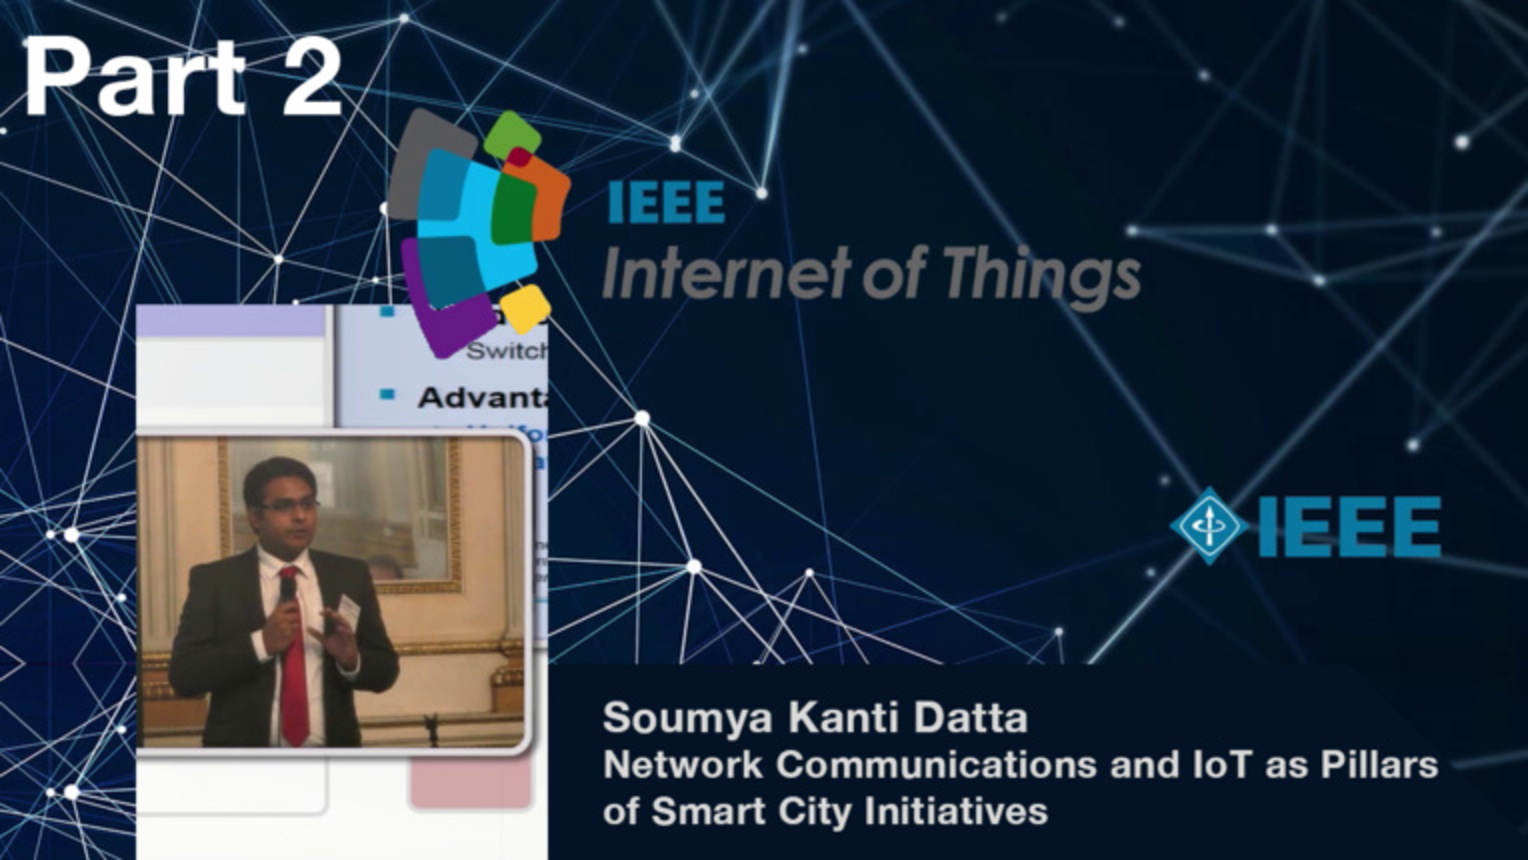 Part 2: Network Communications and Internet of Things as Pillars of Smart City Initiatives - Soumya Kanti Datta, IEEE WF-IoT 2015